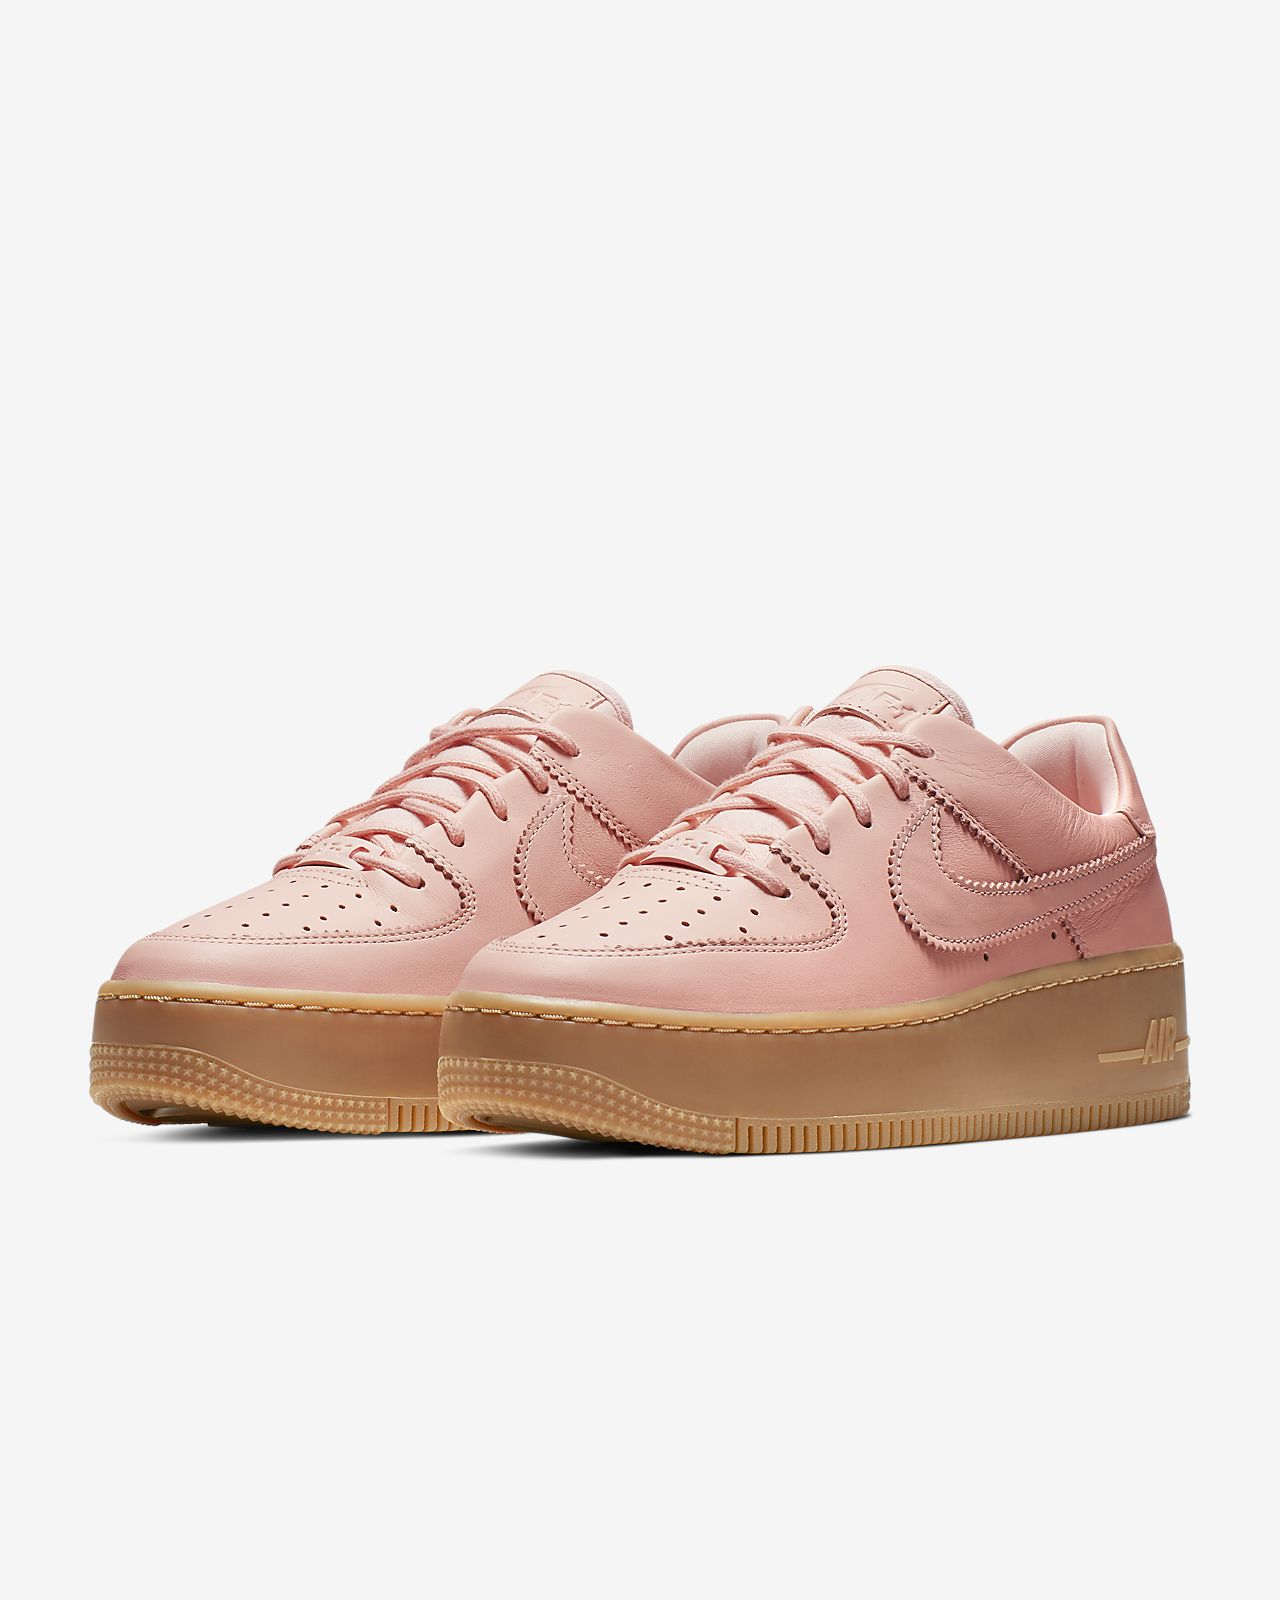 Nike Air Force 1 Sage Low LX Zapatillas Mujer